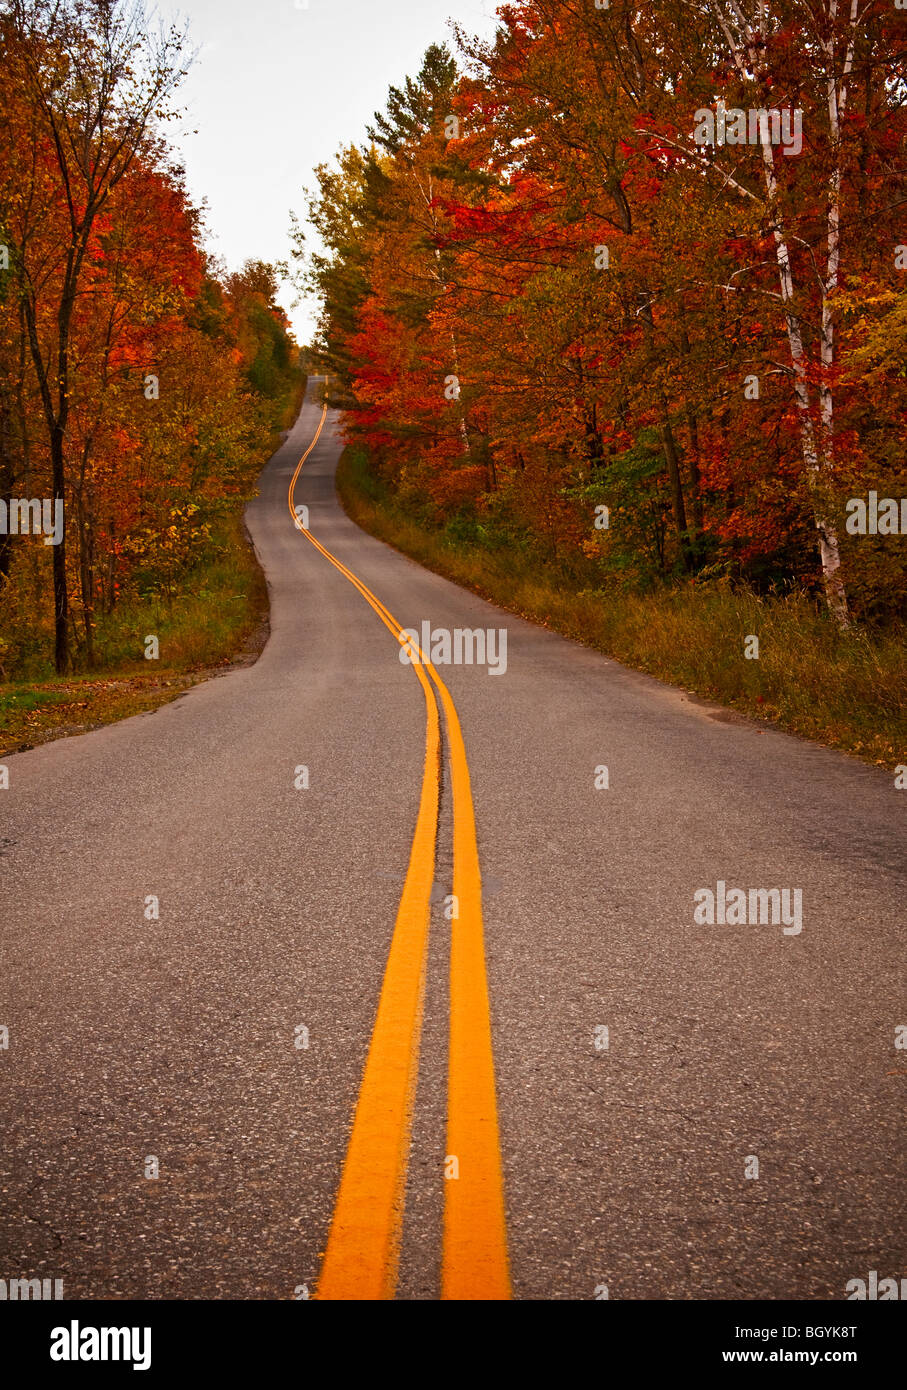 Road in autumn - Stock Image